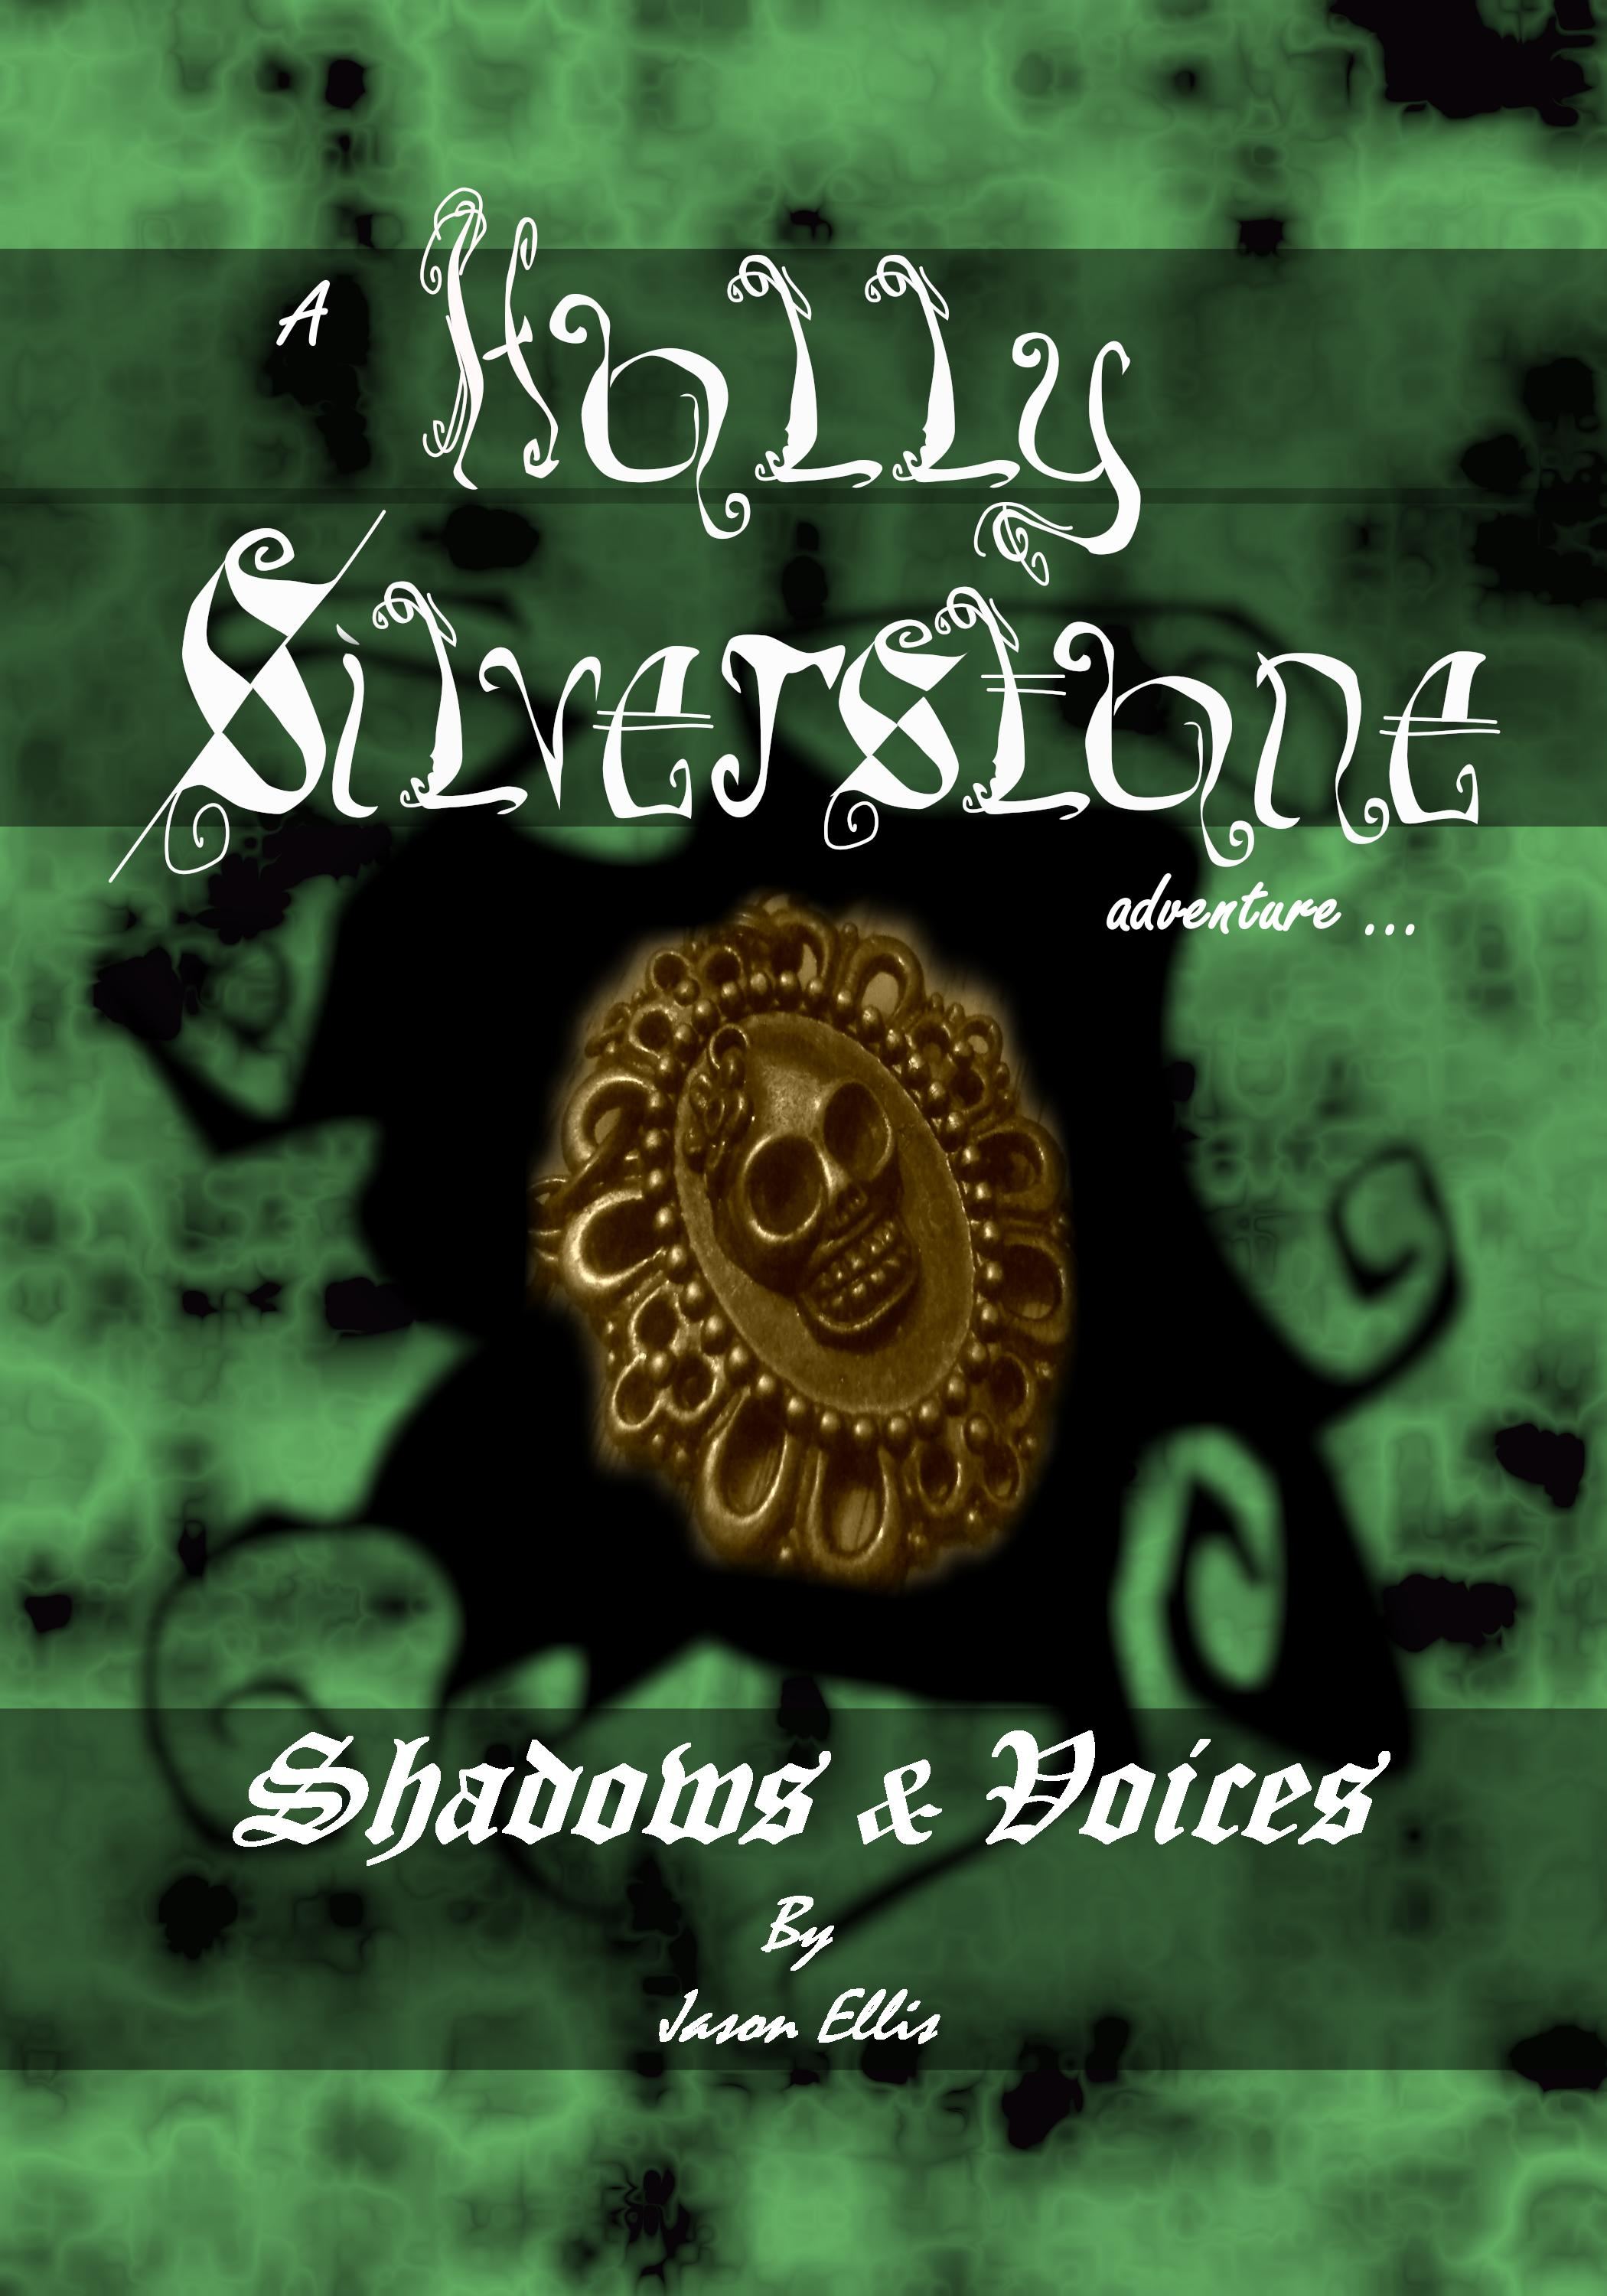 A Holly Silverstone adventure ... Shadows & Voices